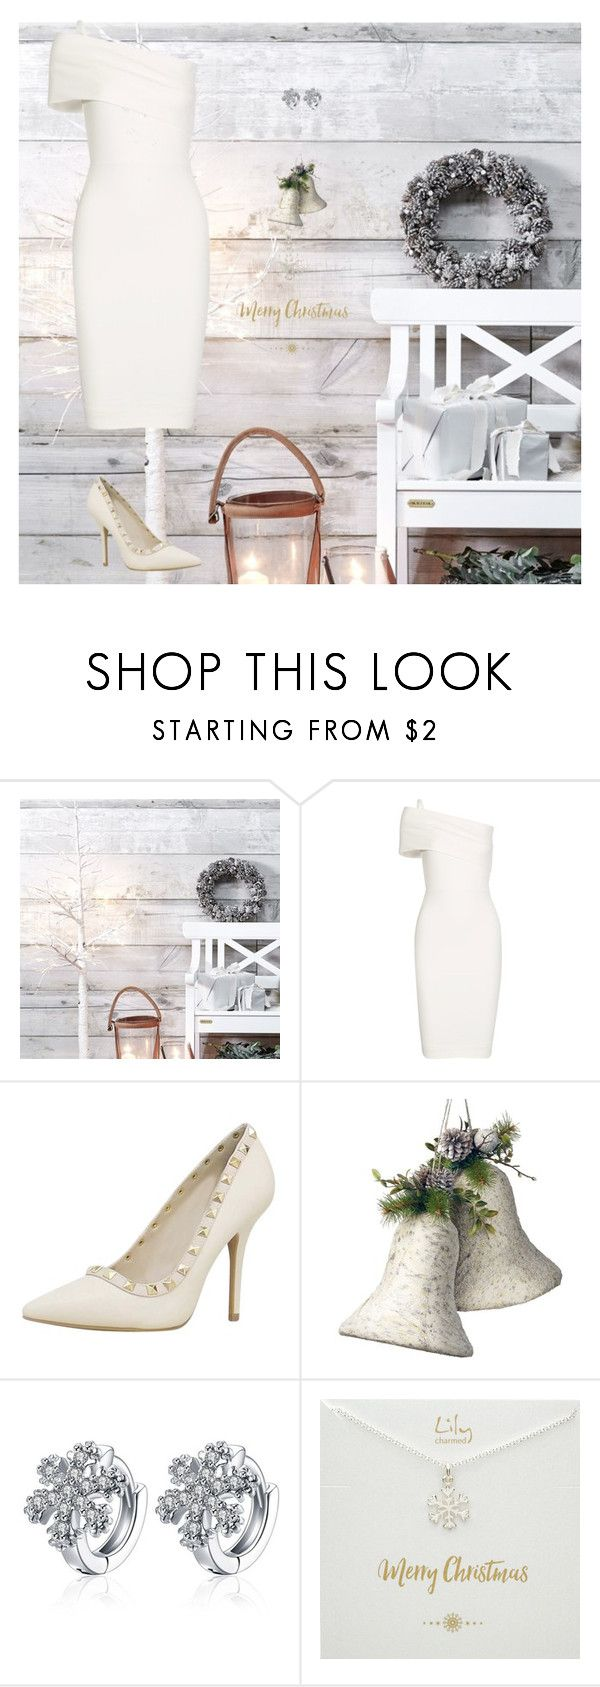 """Holiday Dress"" by carlafashion-246 ❤ liked on Polyvore featuring Michelle Mason and National Tree Company"